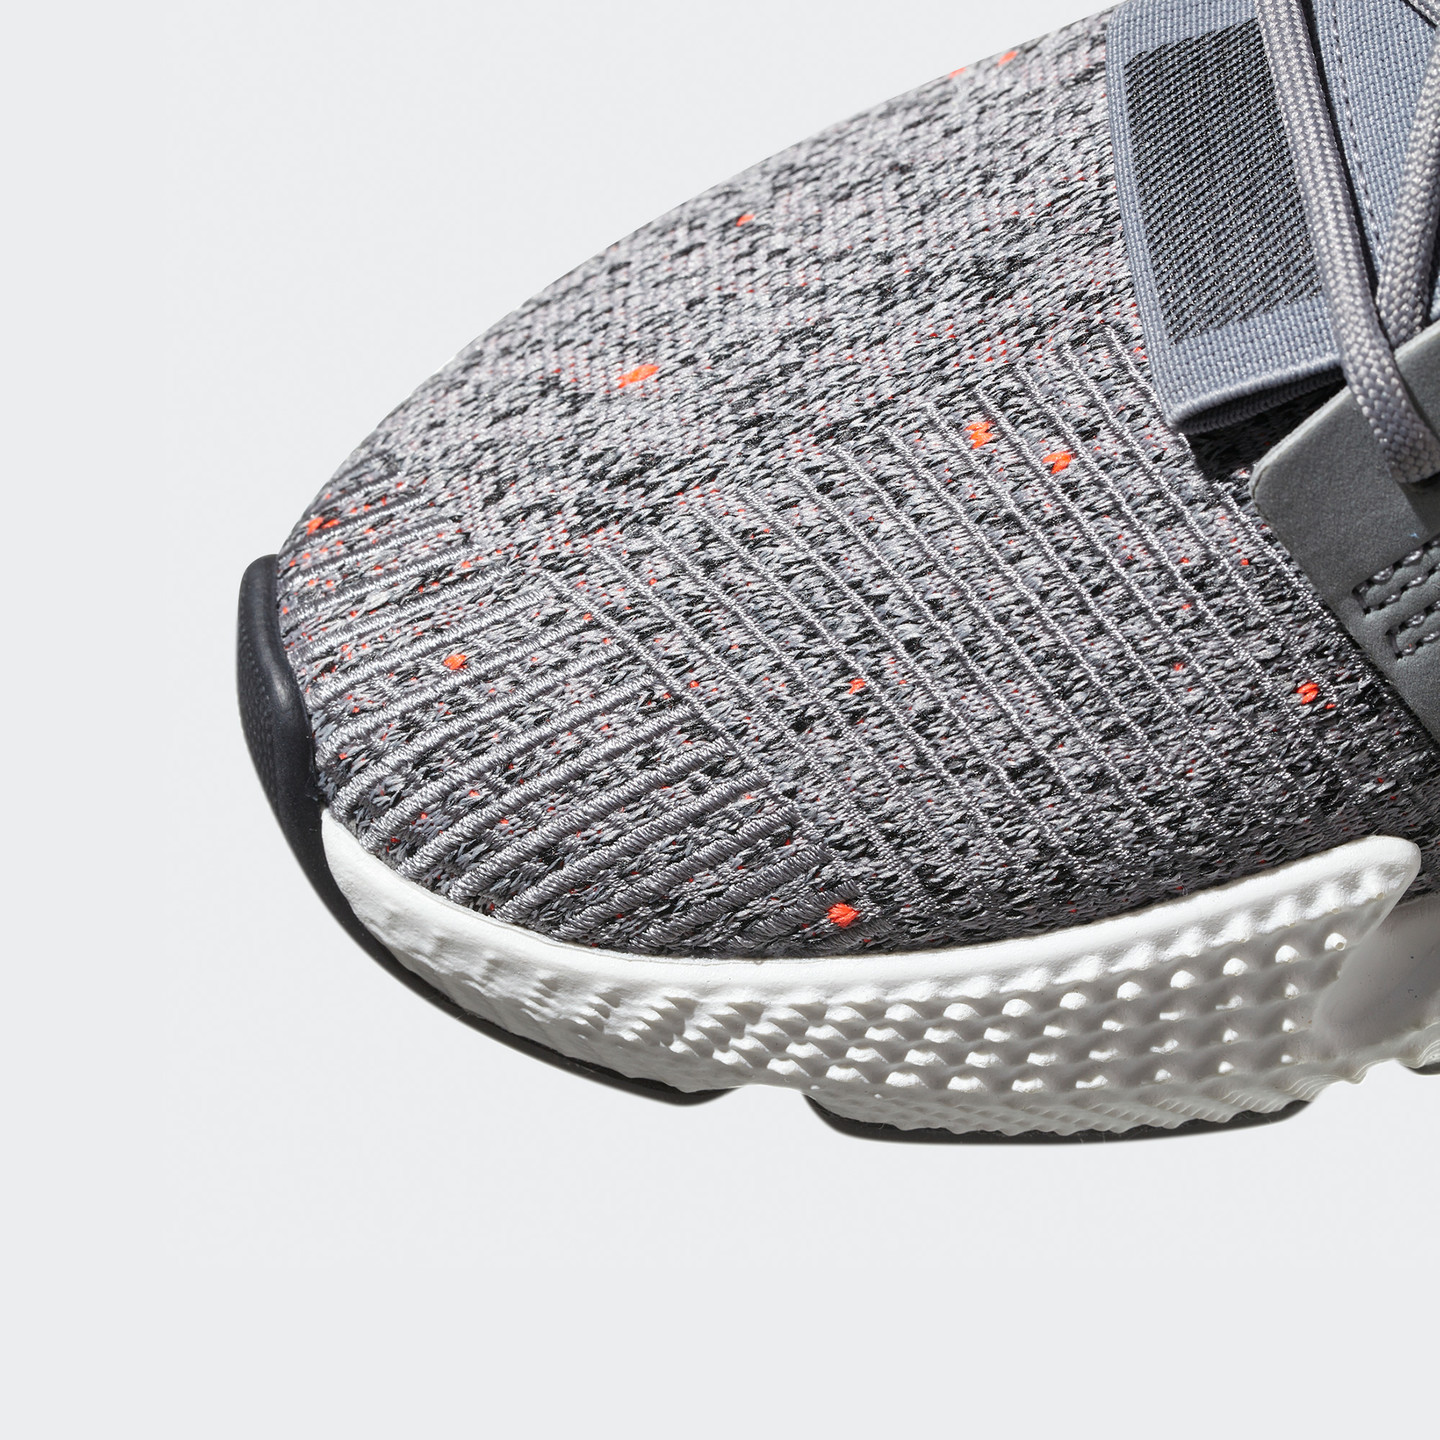 Adidas Prophere Grey / Ftwr White / Solar Red CQ3023